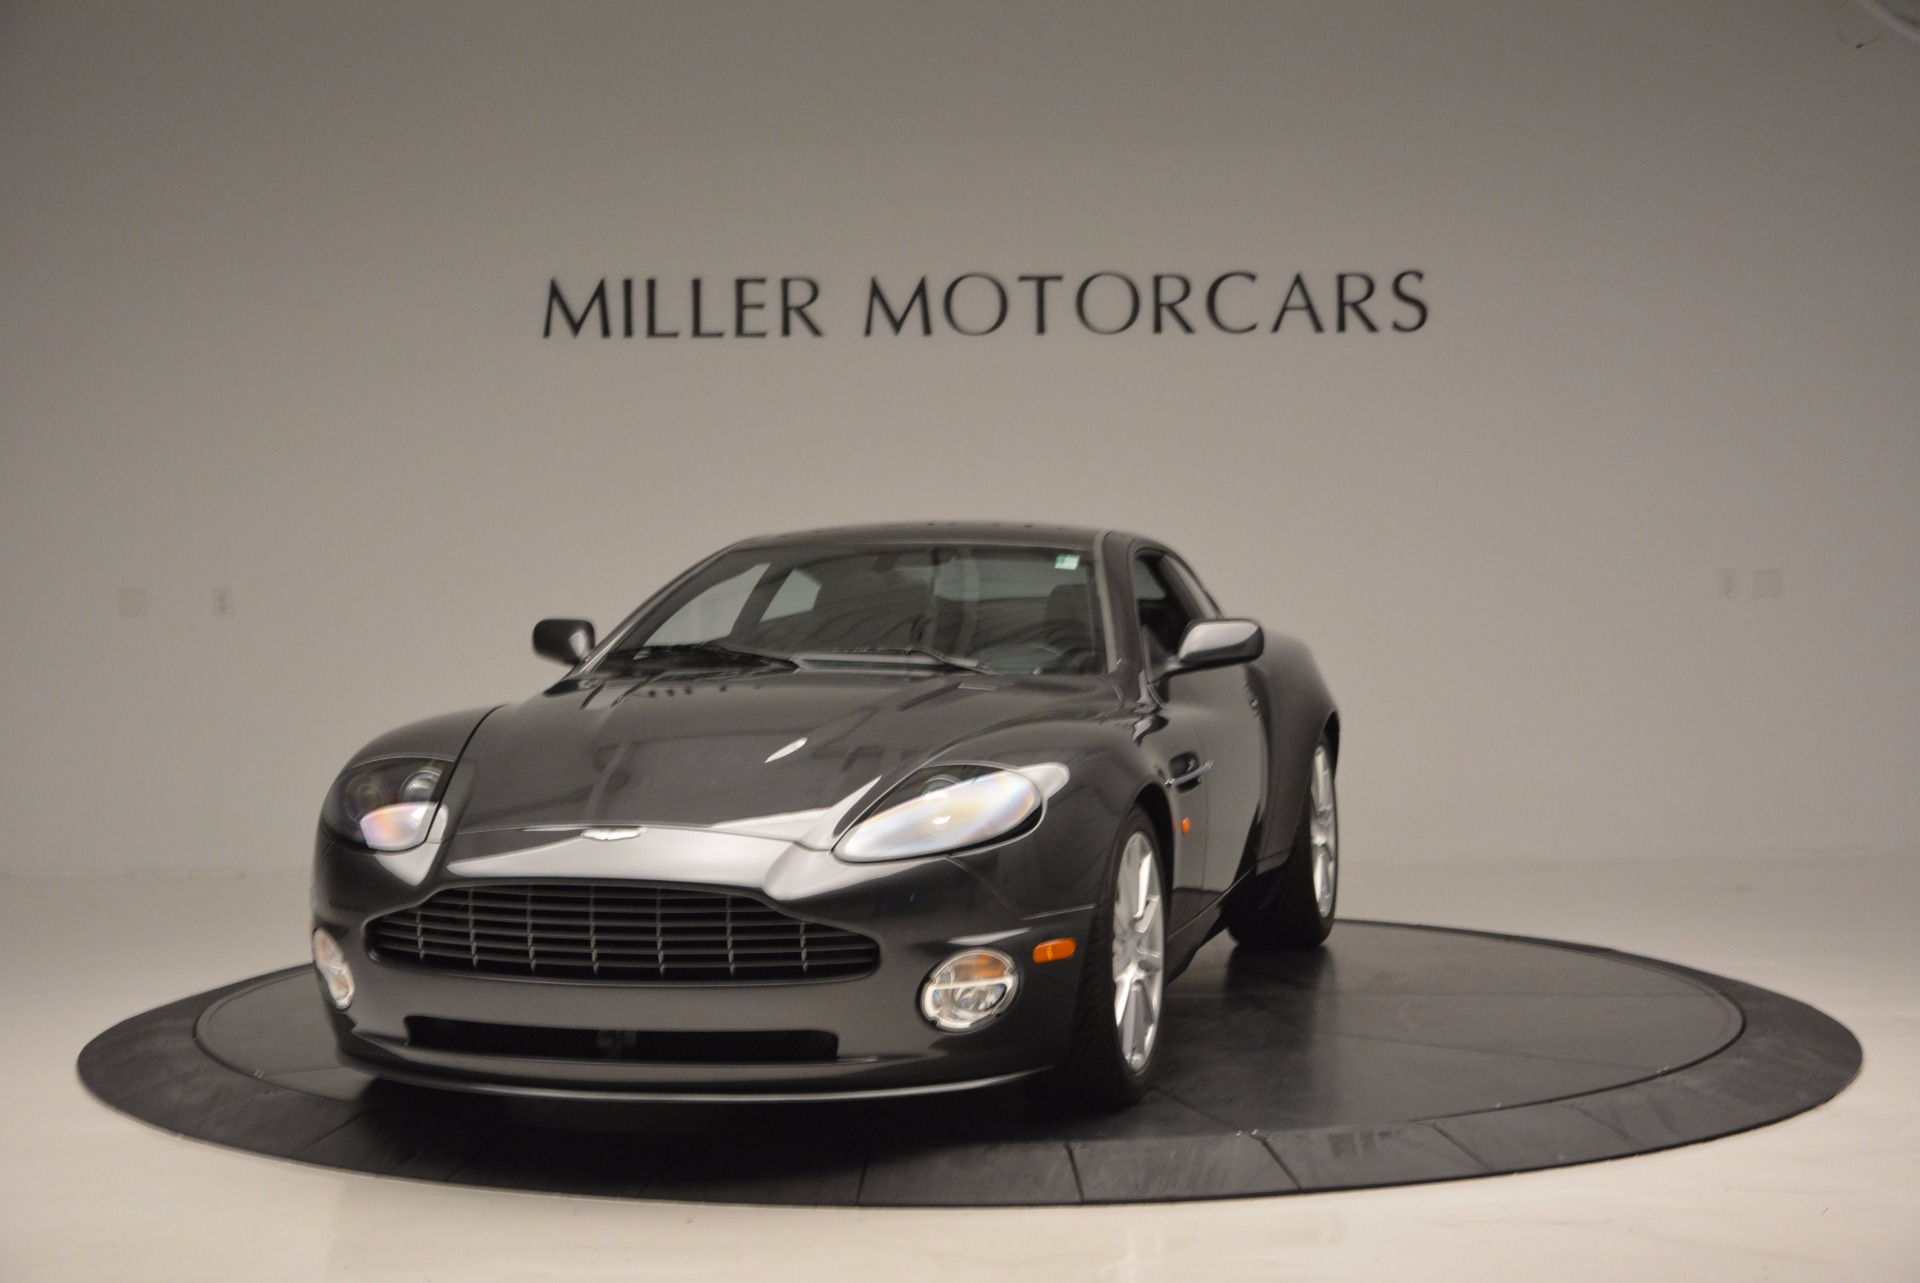 Used 2005 Aston Martin V12 Vanquish S for sale Sold at Rolls-Royce Motor Cars Greenwich in Greenwich CT 06830 1